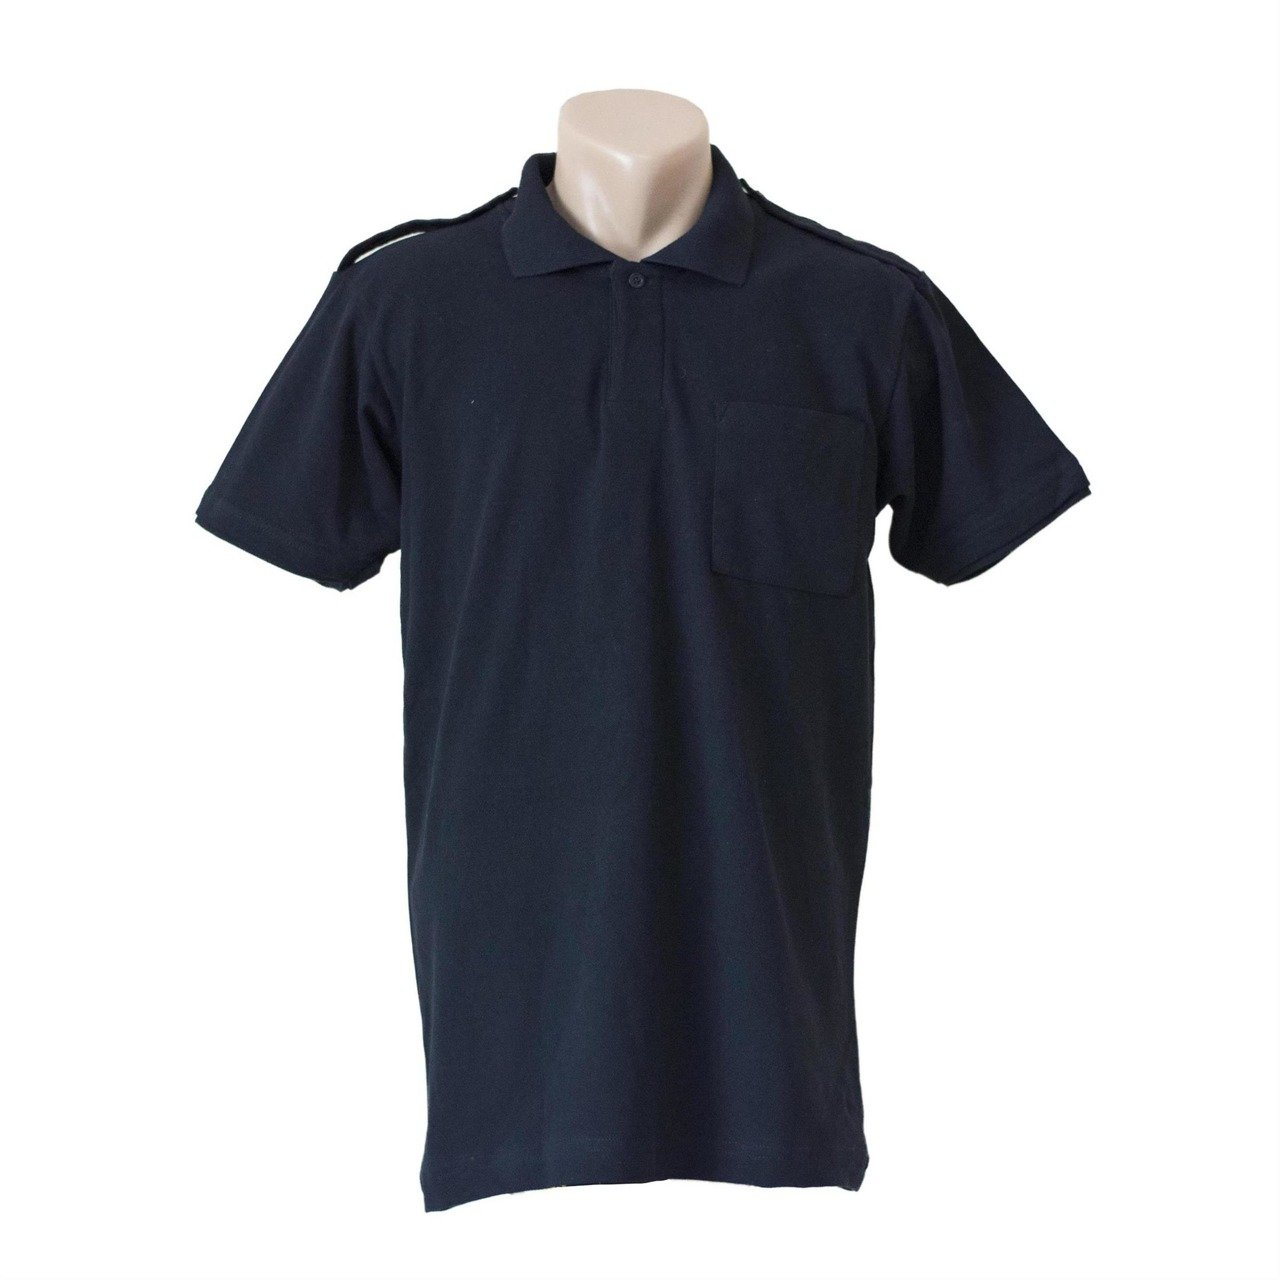 Polo t shirt blue navy with pocket police ems fire for Polo t shirts with pockets